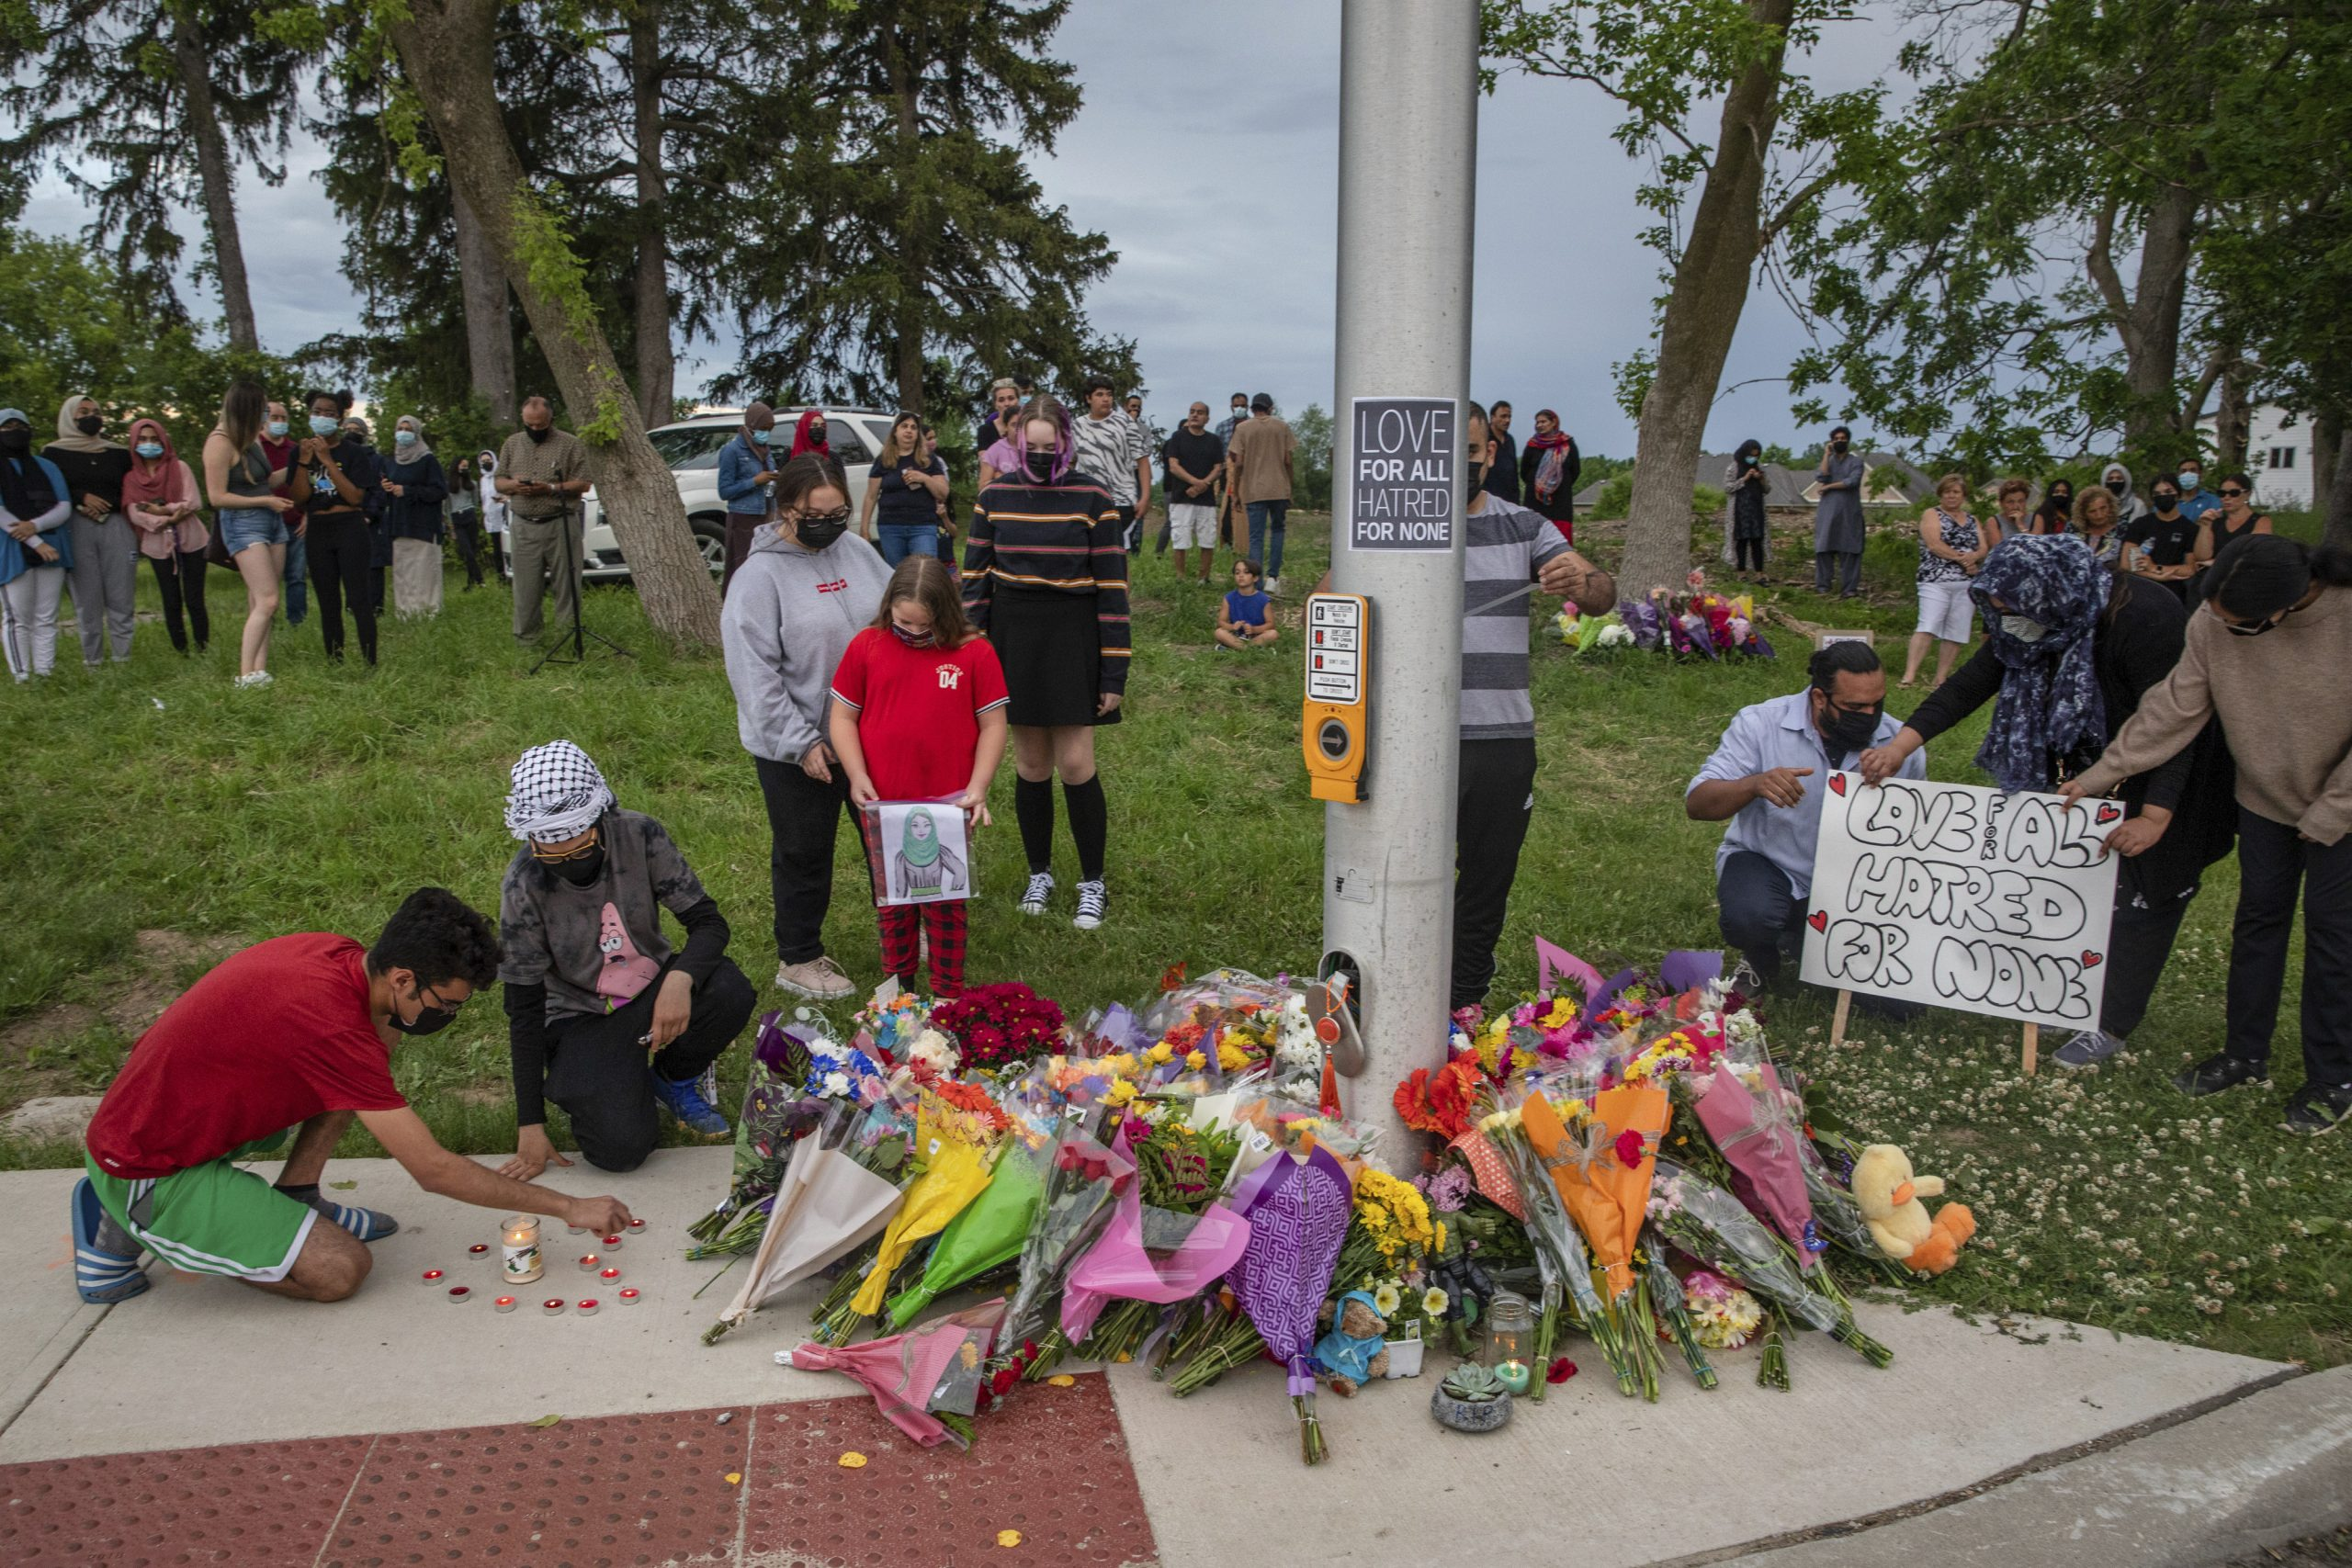 People attend a memorial at the location where a family of five was hit by a driver in London, Ontario, on June 7, 2021. Four members of the family died and one is in critical condition. A 20-year-old man has been charged with four counts of first-degree murder and a count of attempted murder in connection with the crime. (Brett Gundlock/The Canadian Press via AP)